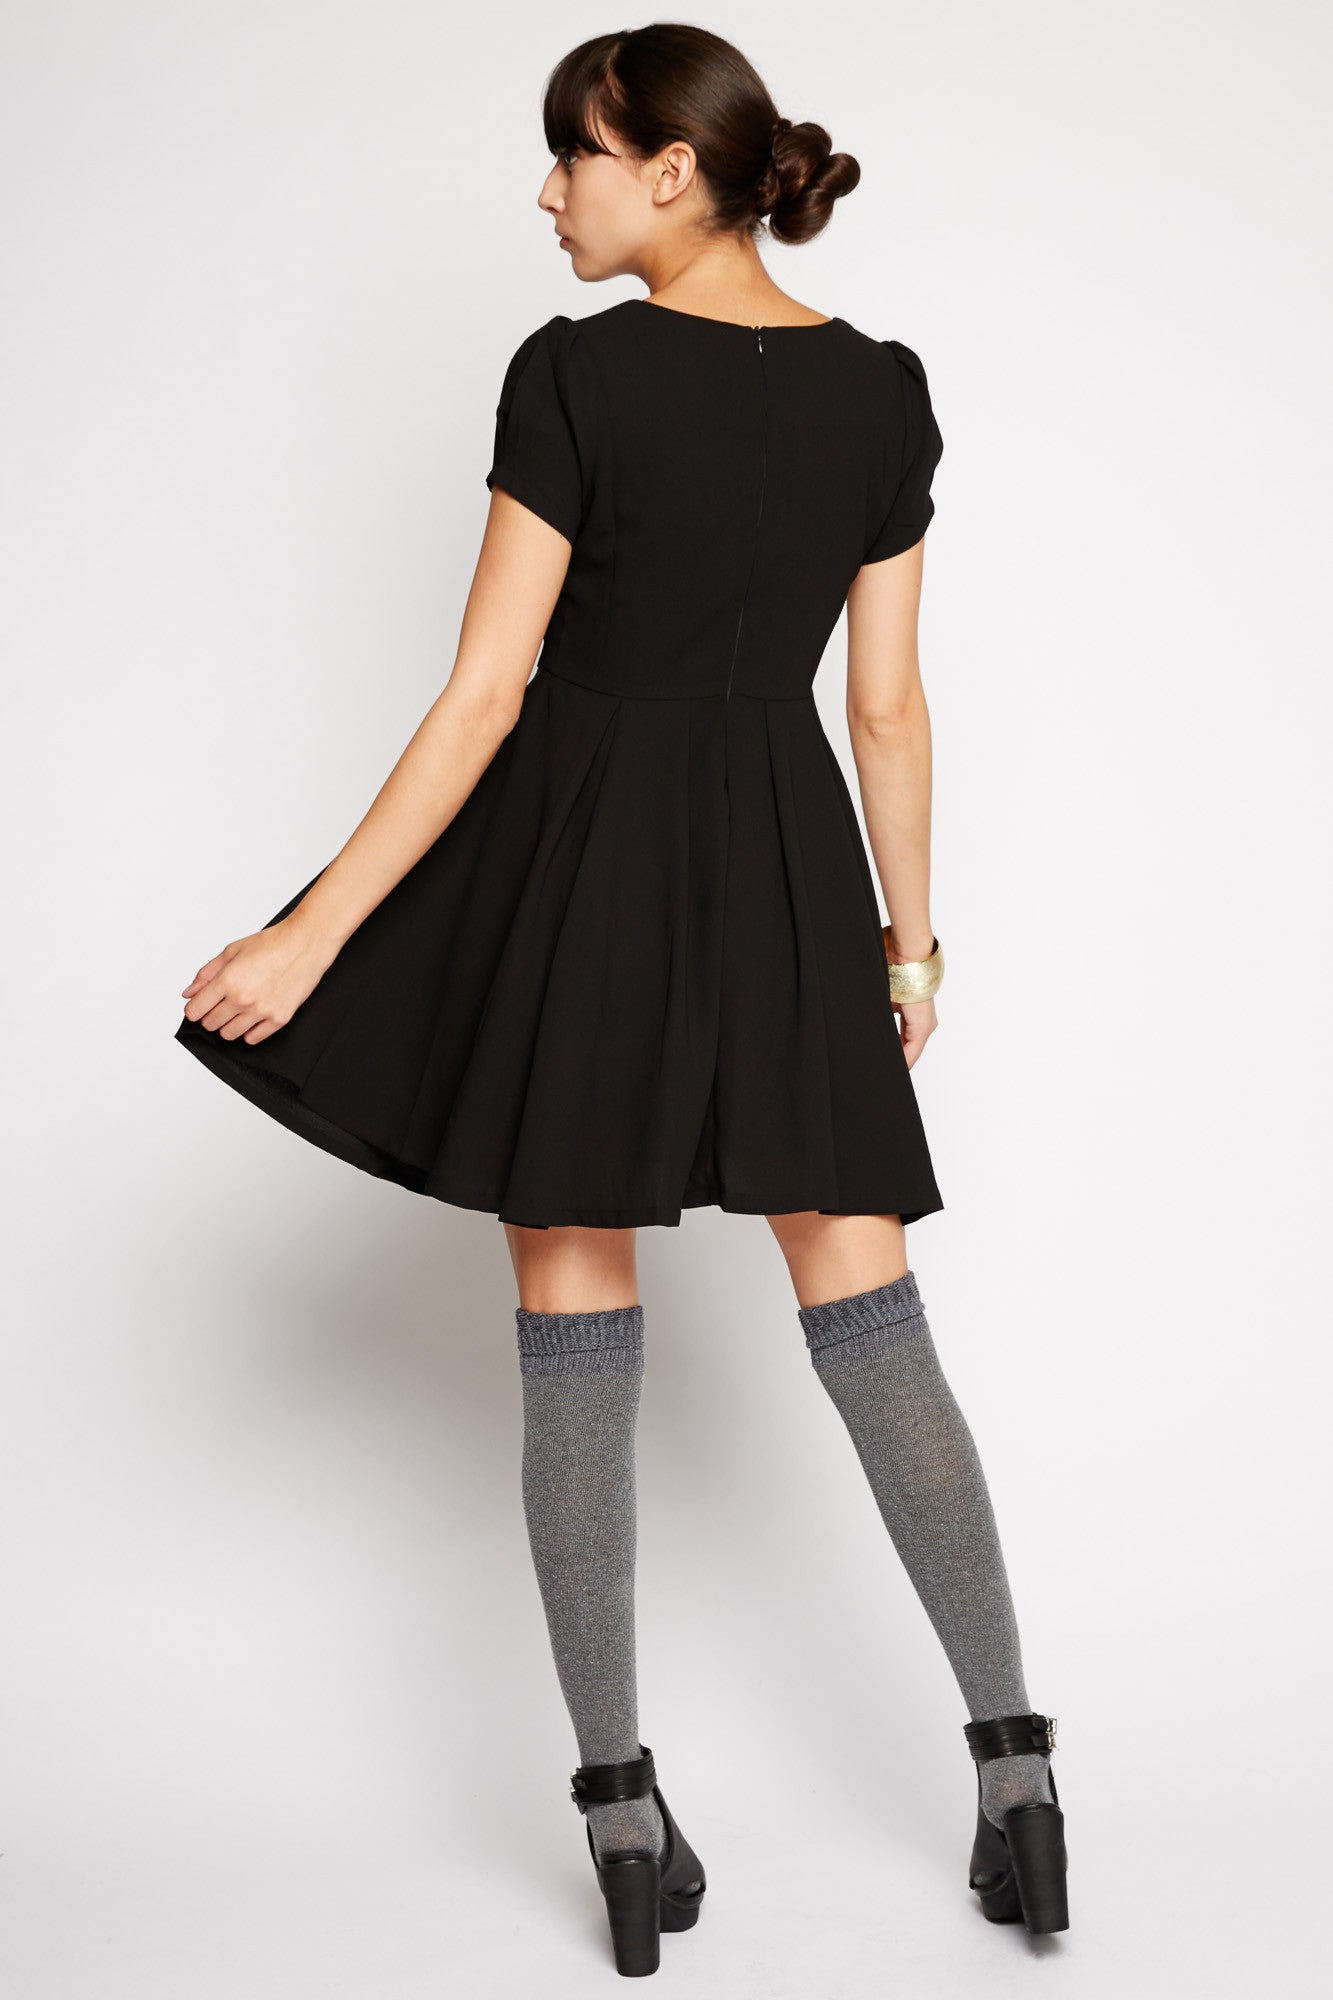 Lyra Black A-line Dress by Kling